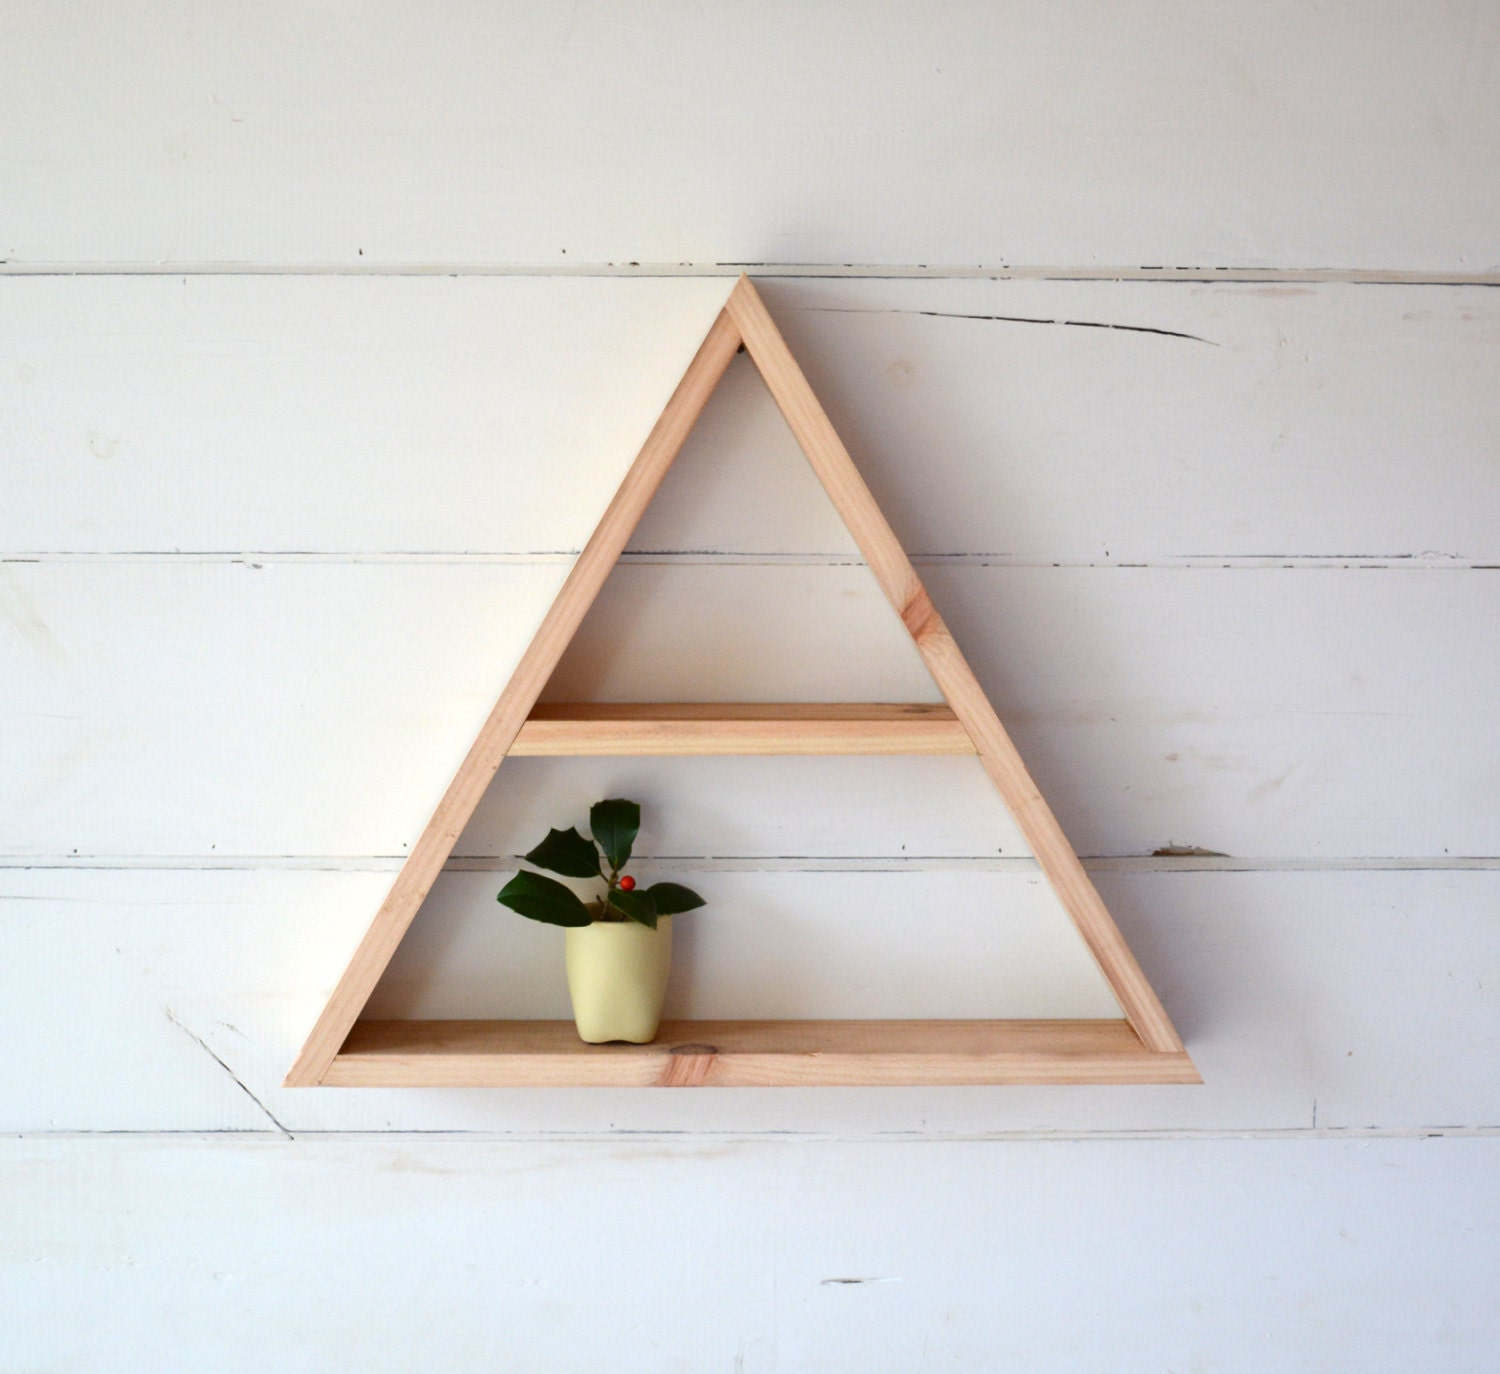 Large Reclaimed Wood Home Decor Triangle Shelf With Shelf